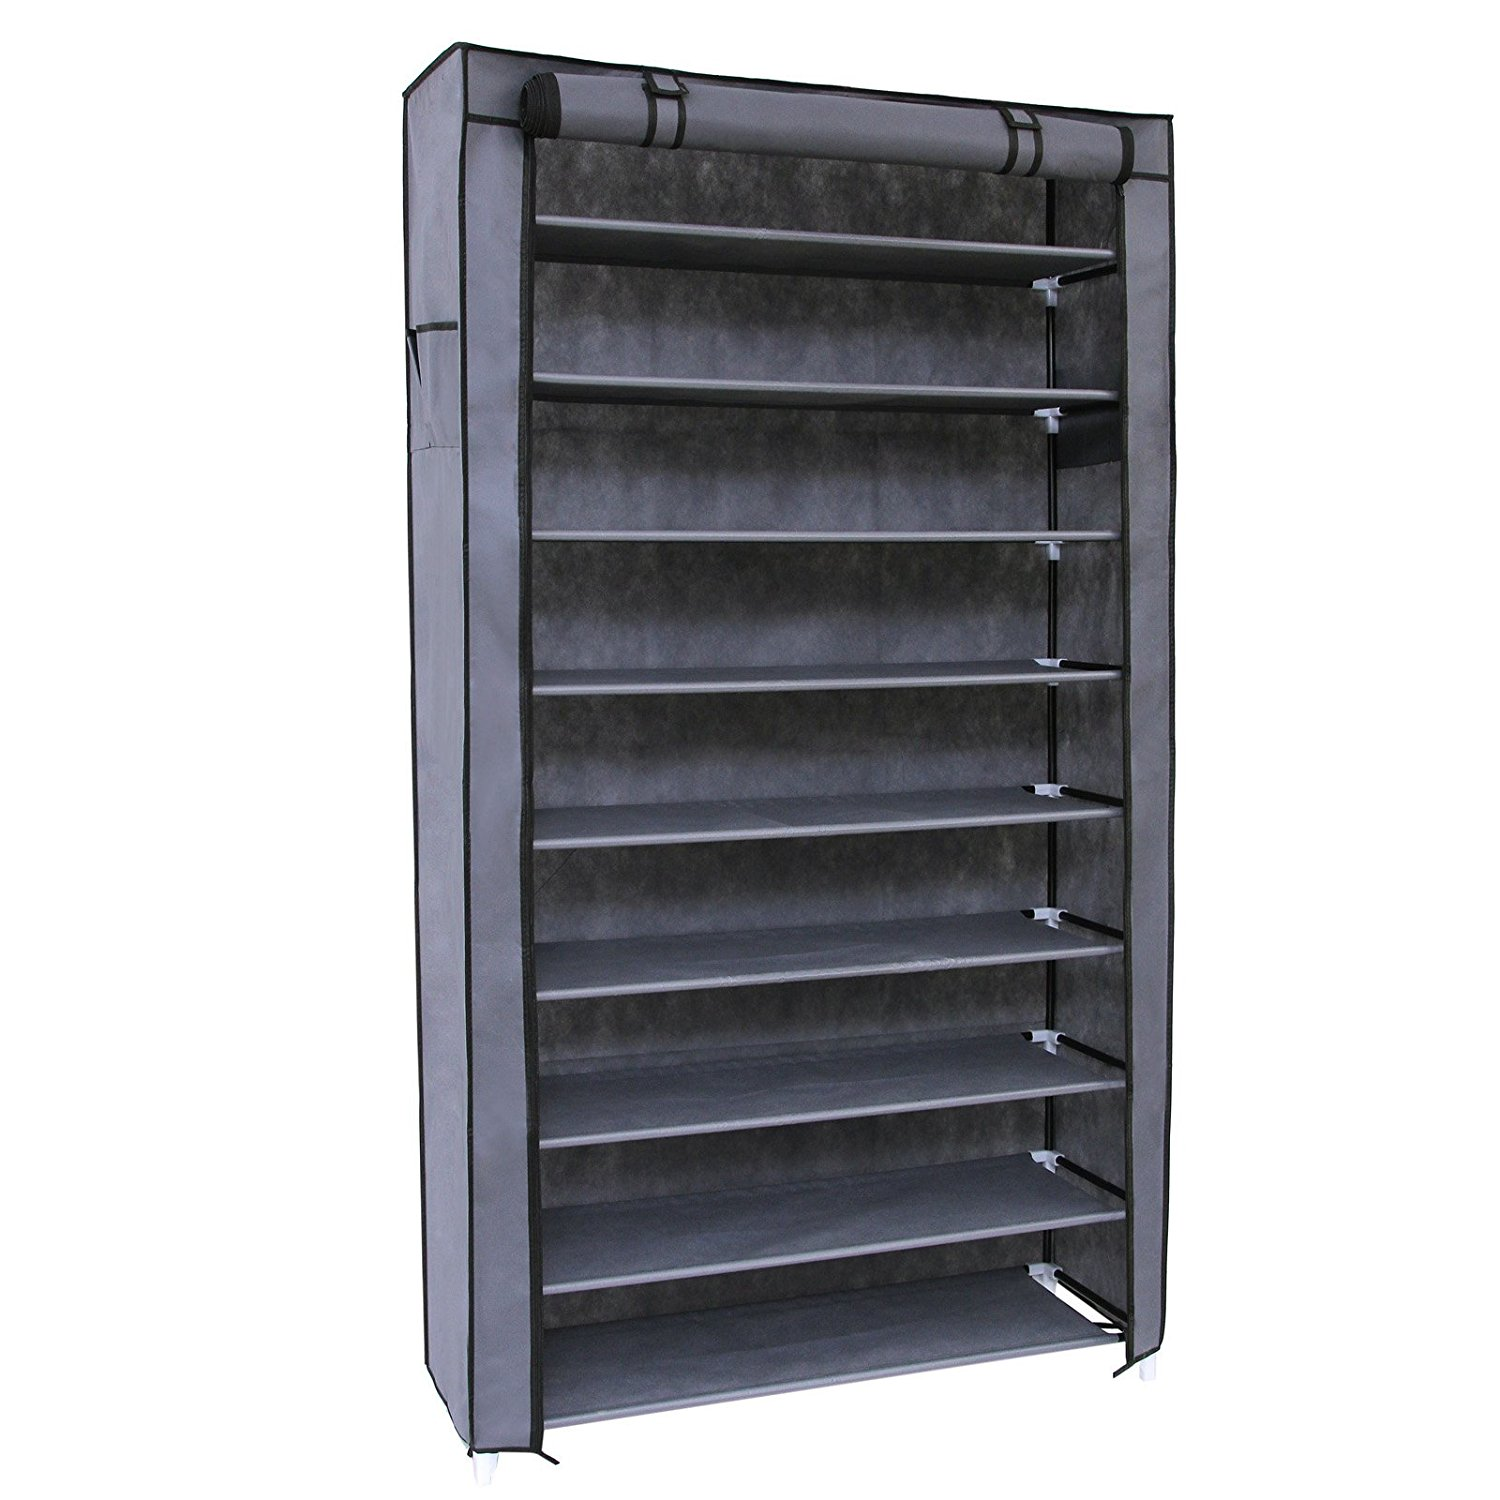 Photos of SONGMICS 10 Tiers Shoe Rack with Dustproof Cover Closet Shoe Storage closet shoe organizer